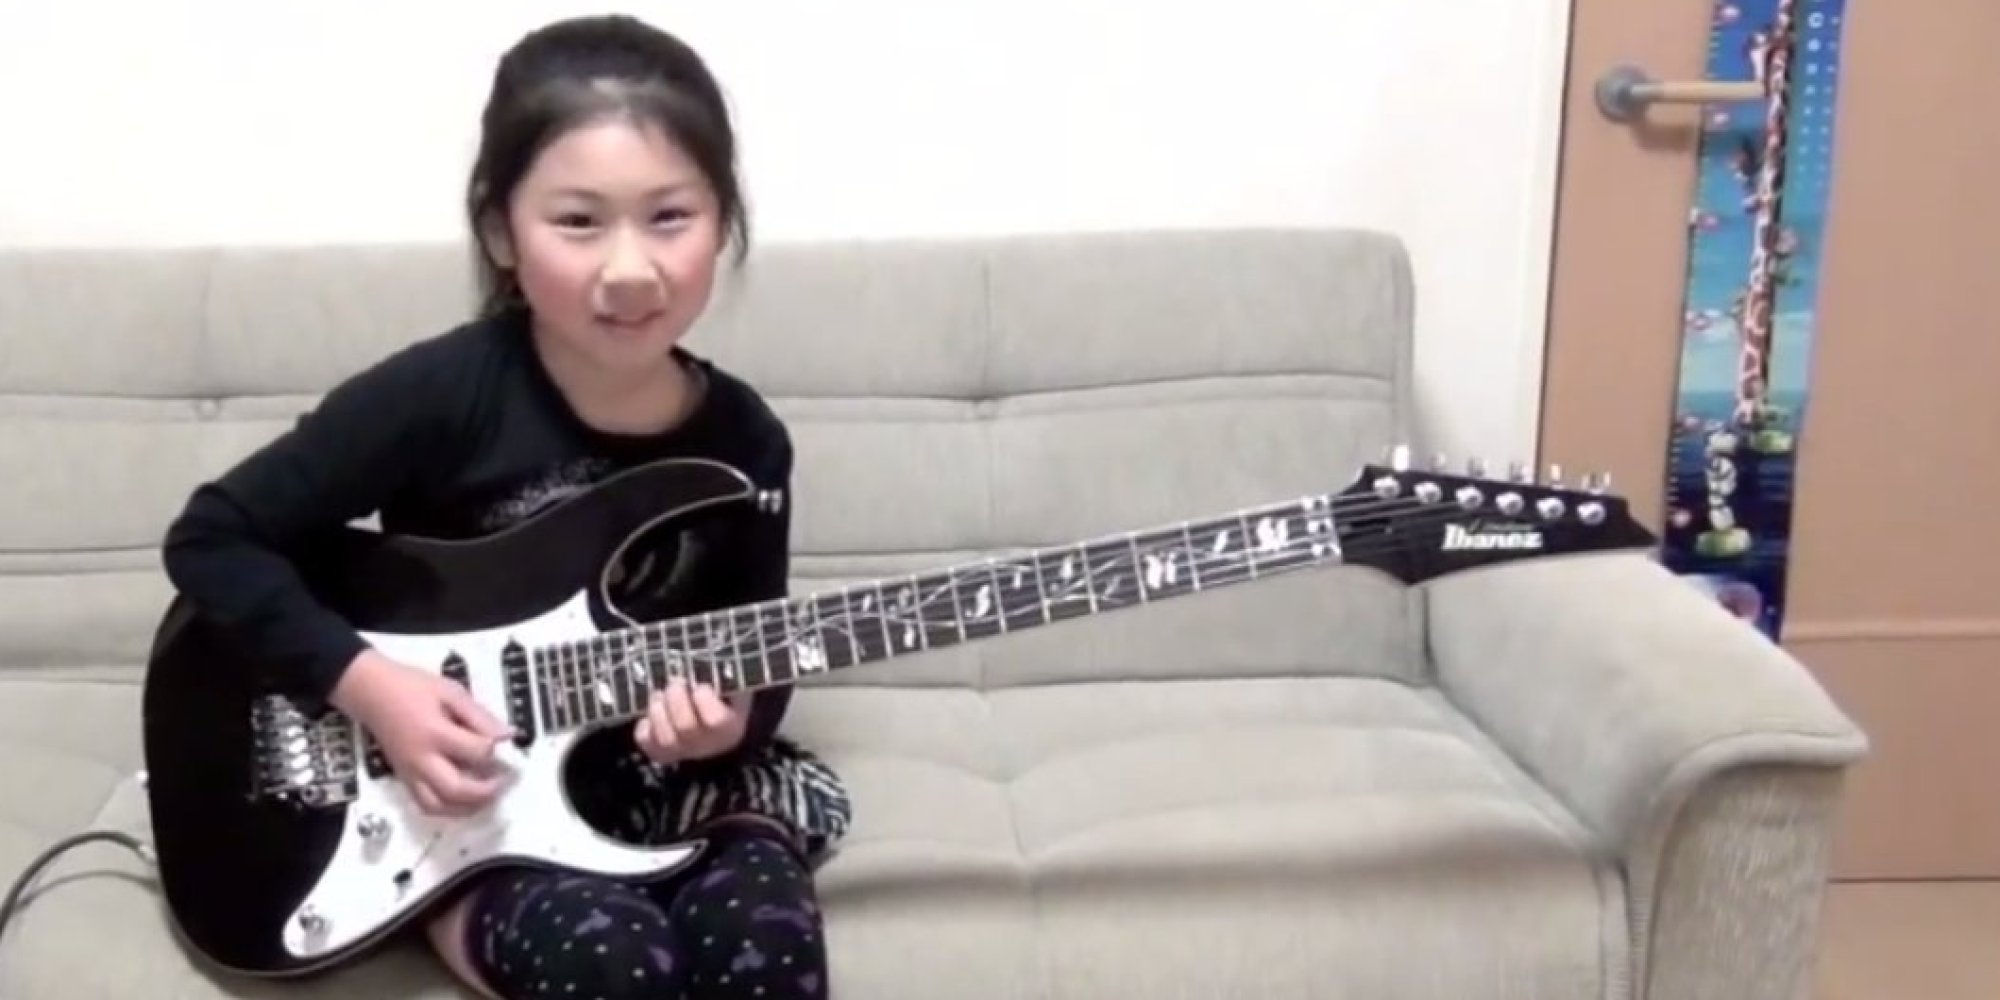 WATCH: Japanese Girl Shreds Guitar, Gender Stereotypes